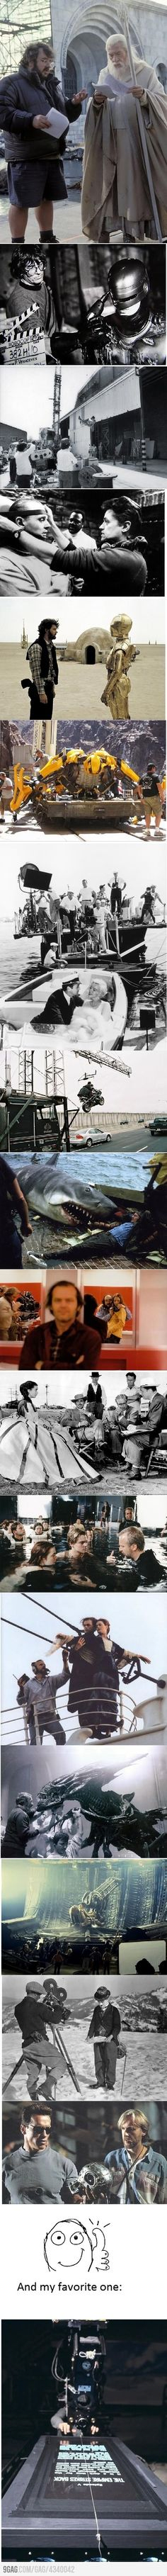 love this: famous directors working on some of the most iconic movie scenes of all time.